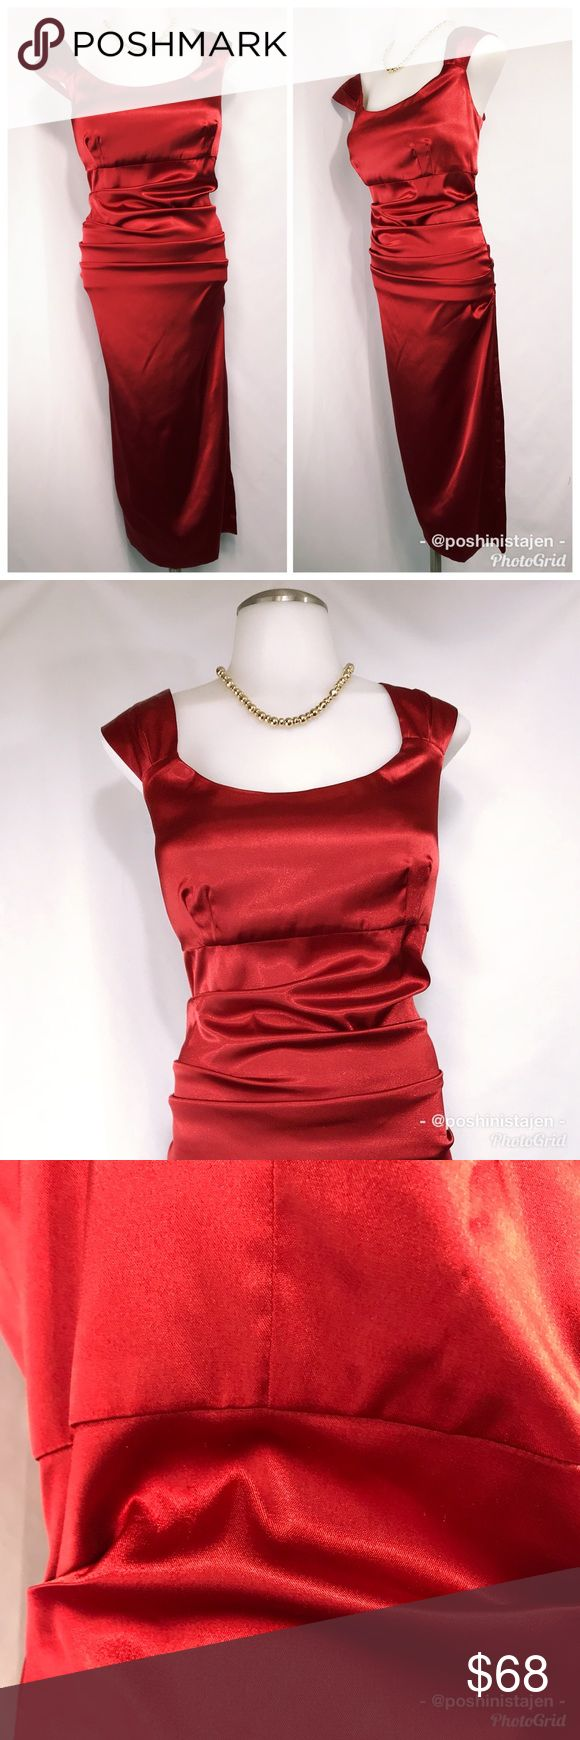 🆕 Red Satin Ruched Cocktail Dress sz 10 This gorgeous dress is from Suite 7. It's a satin like material that is ruched on the sides and the back for a sexy flattering fit. It has one minor flaw as shown in the third photo where it's a little pull but it is not noticeable when wearing. This dress is great for special occasions! Zips up the back. High quality construction. Fully lined. Red Suite 7 ruched cocktail dress in size 10. Suite 7 Dresses Midi